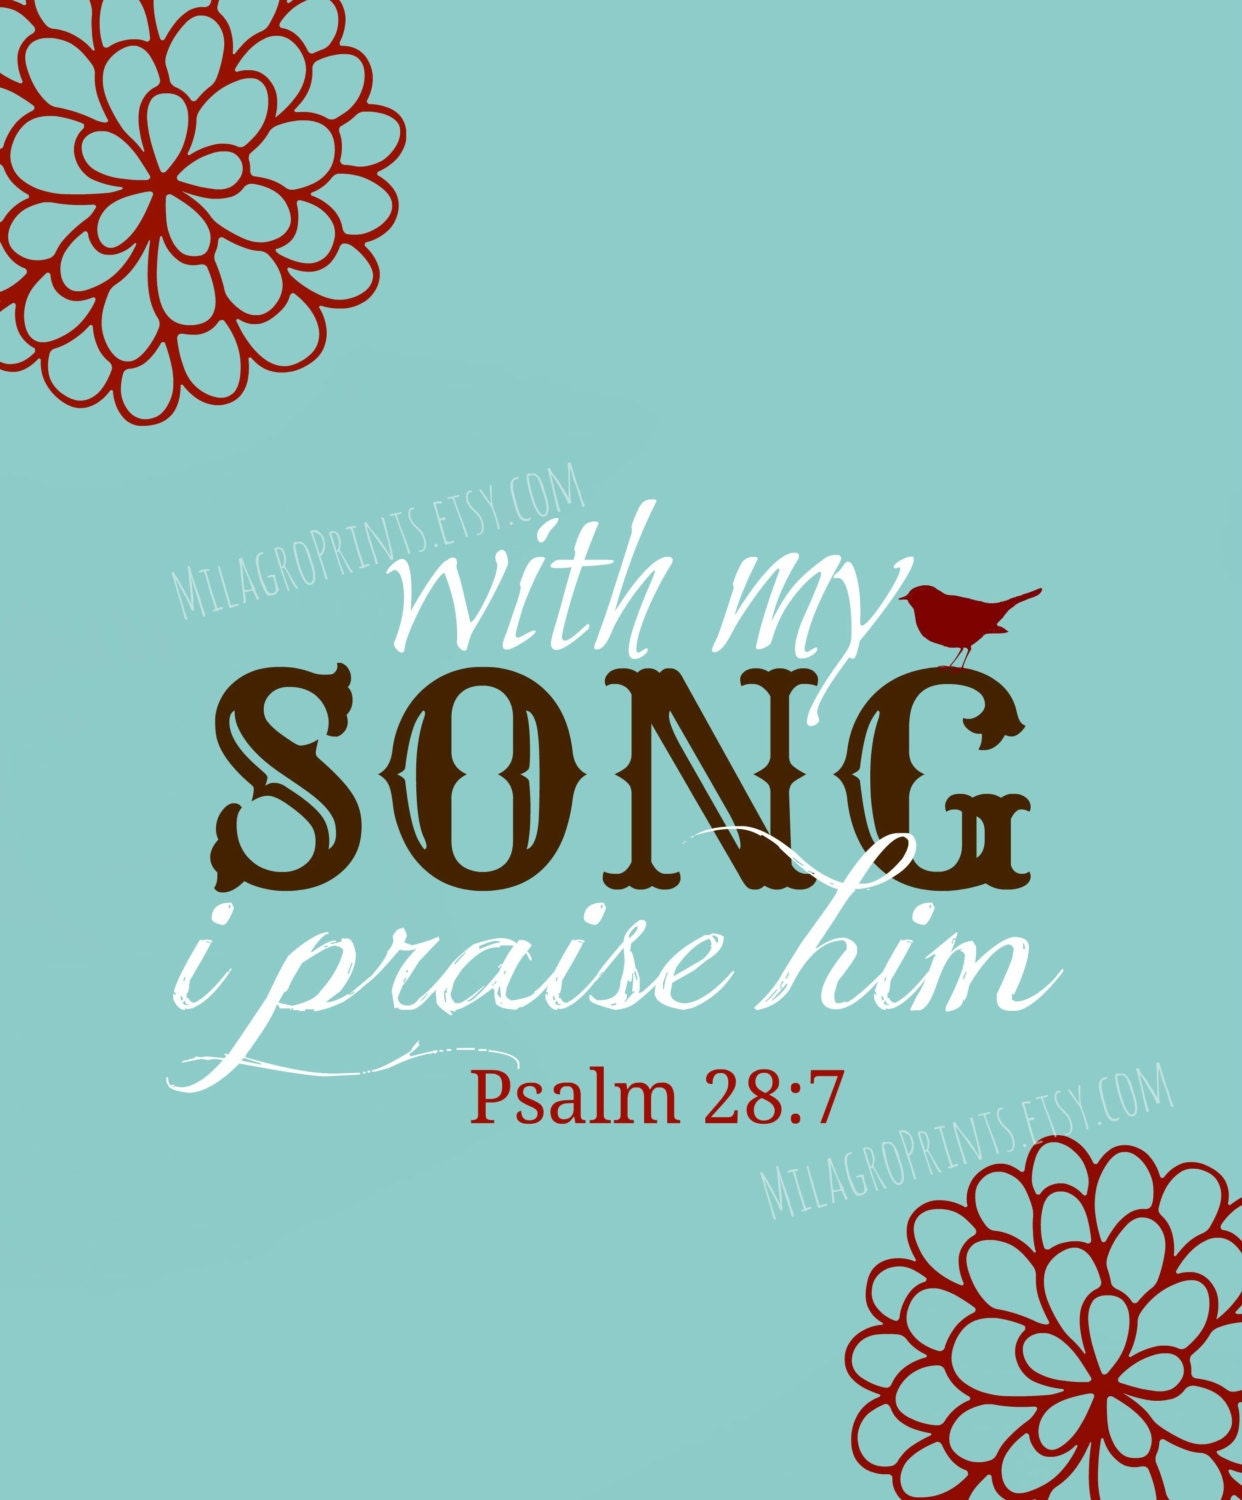 FREE BONUS SURPRISE Print - Scripture print Psalm 28 7 with my song I praise him bible verse color choices - MilagroPrints